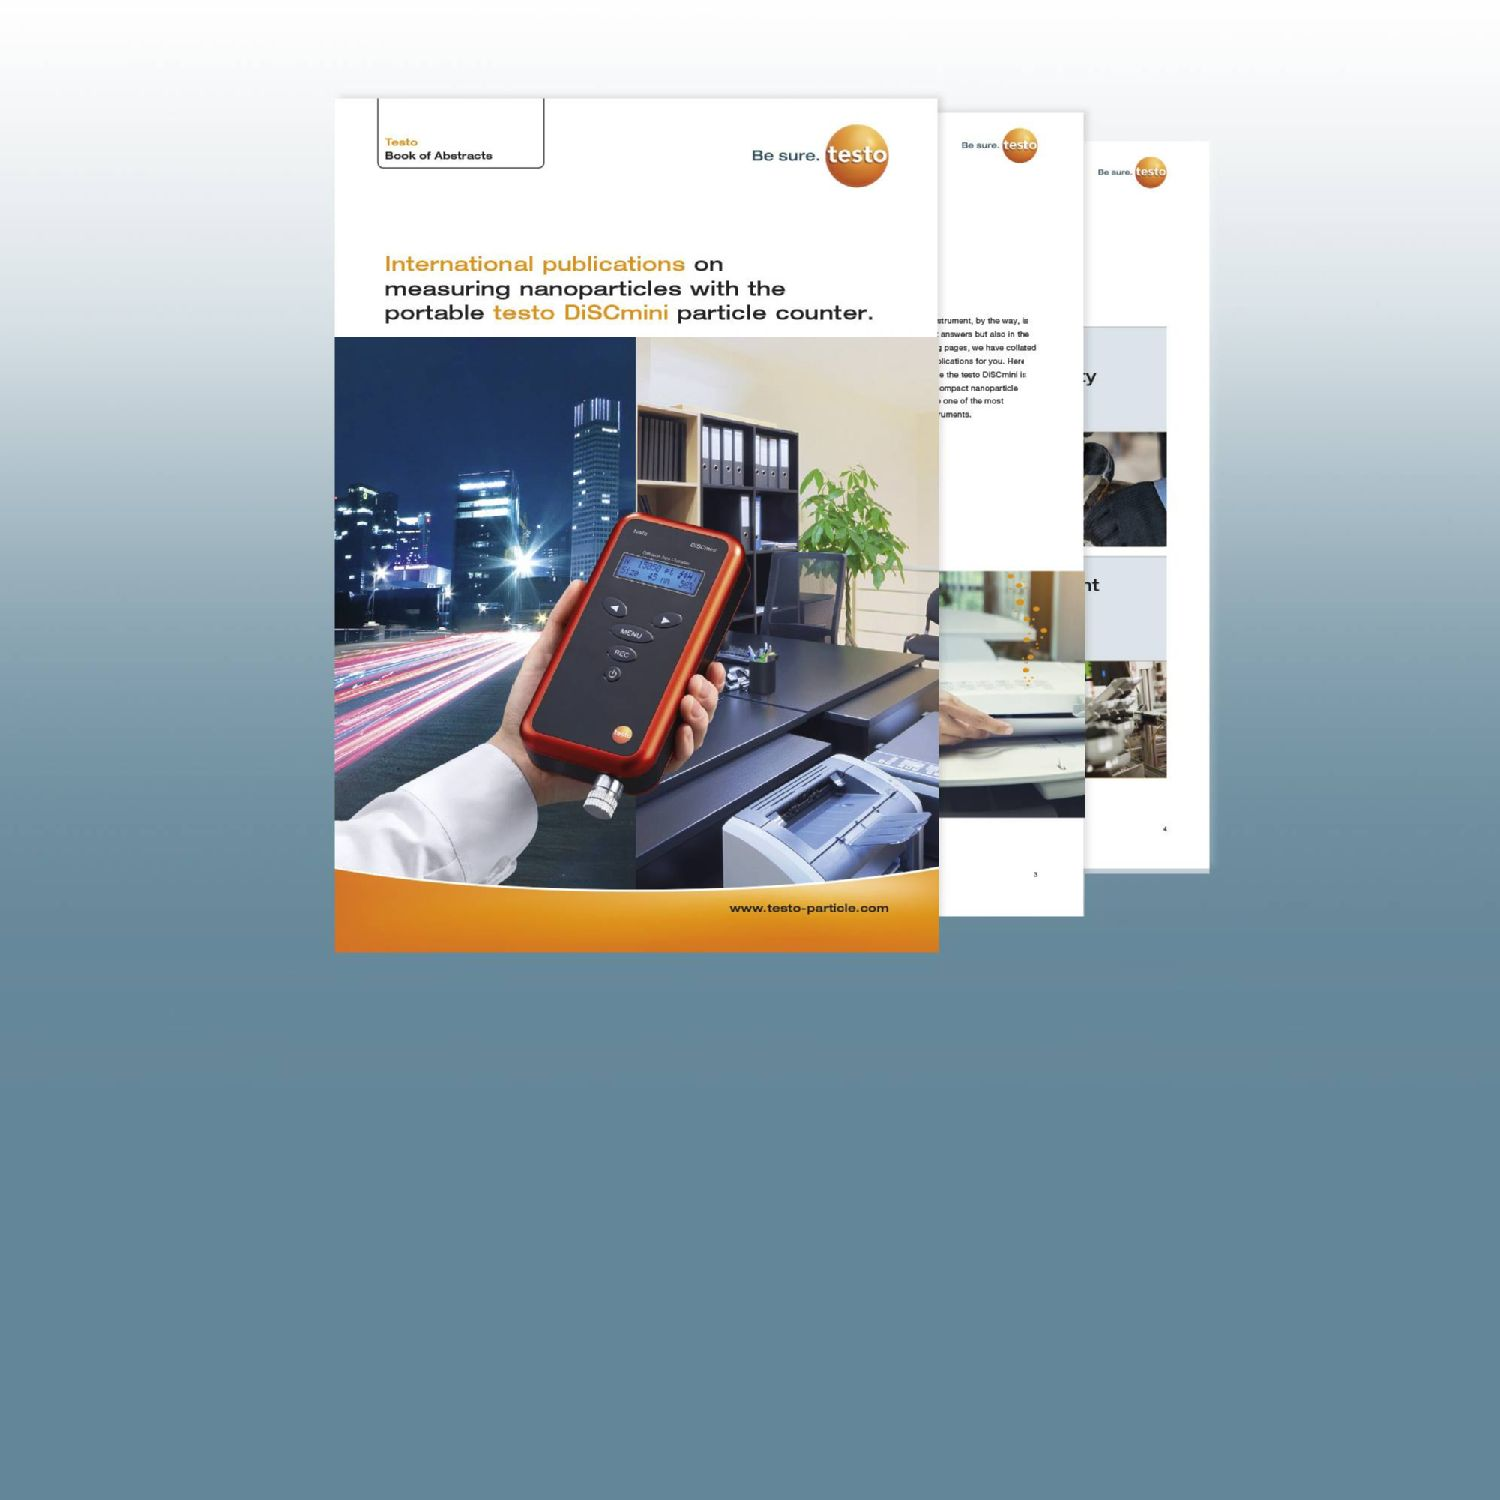 testo-DiSCmini-Book-of-Abstracts-2000x2000.png